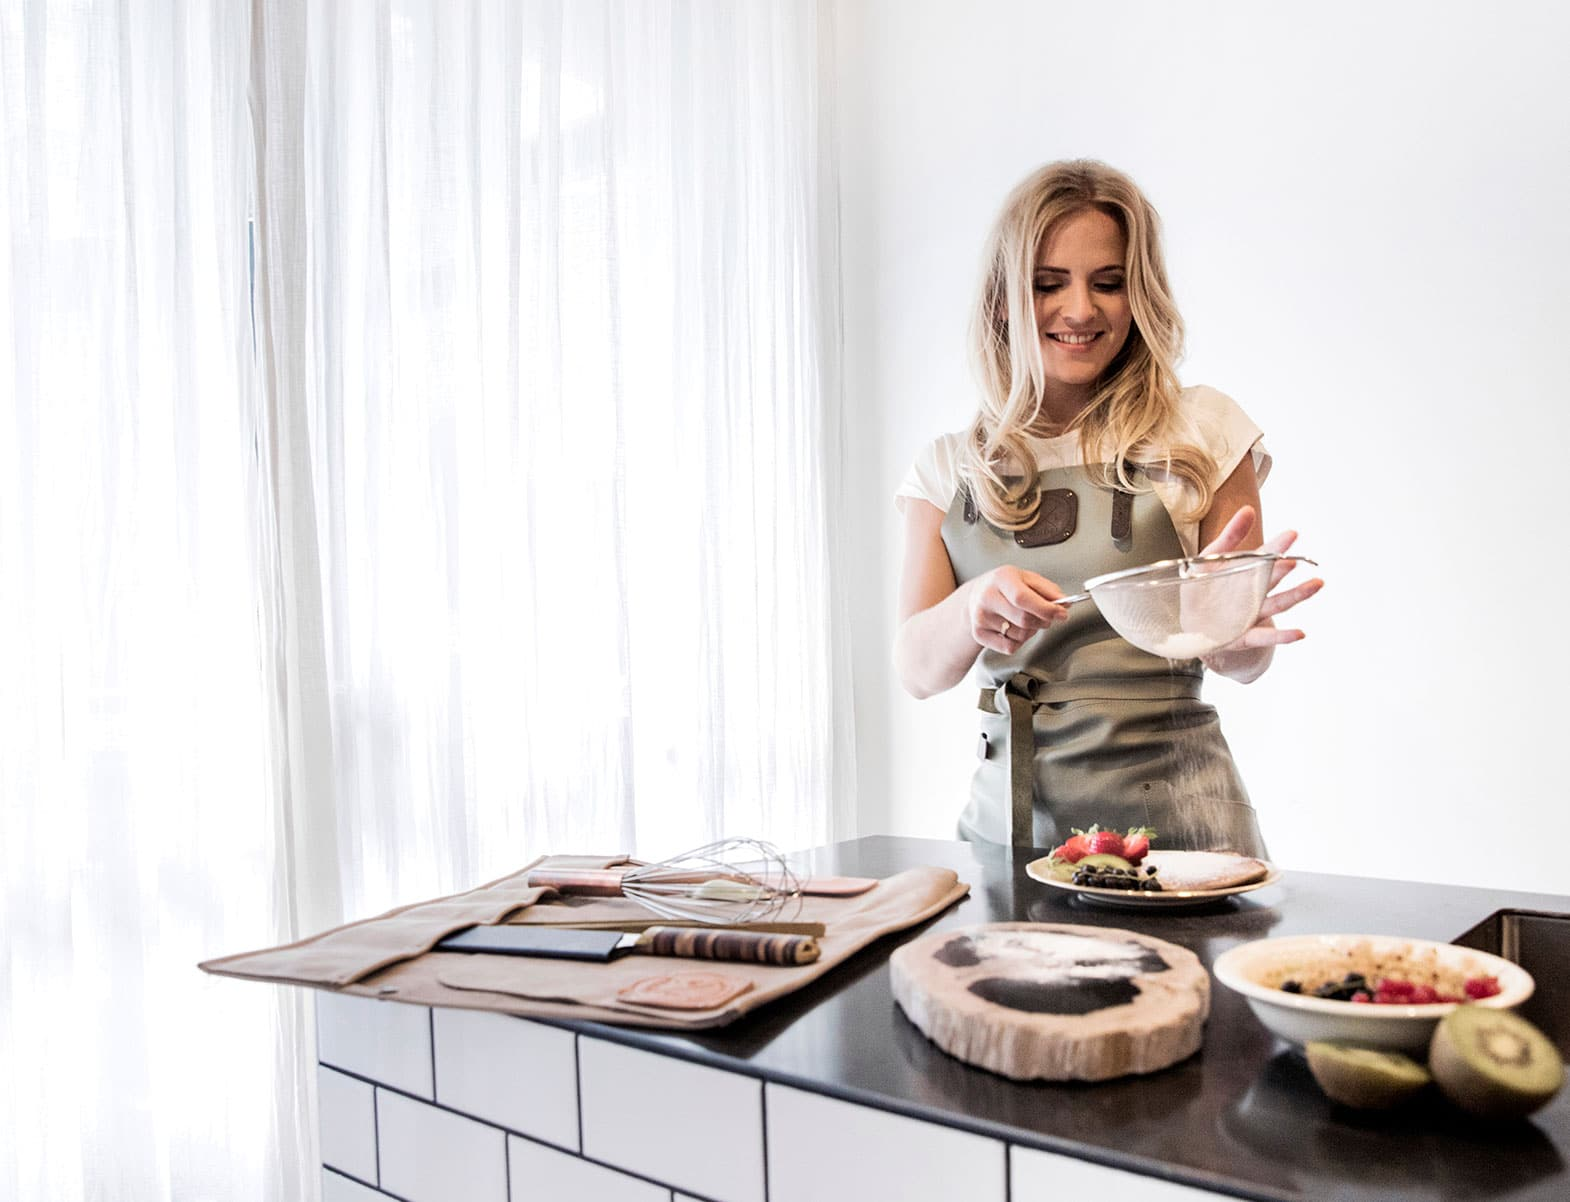 WITLOFT Cooking at home Story wearing an Olive Comfort Collection